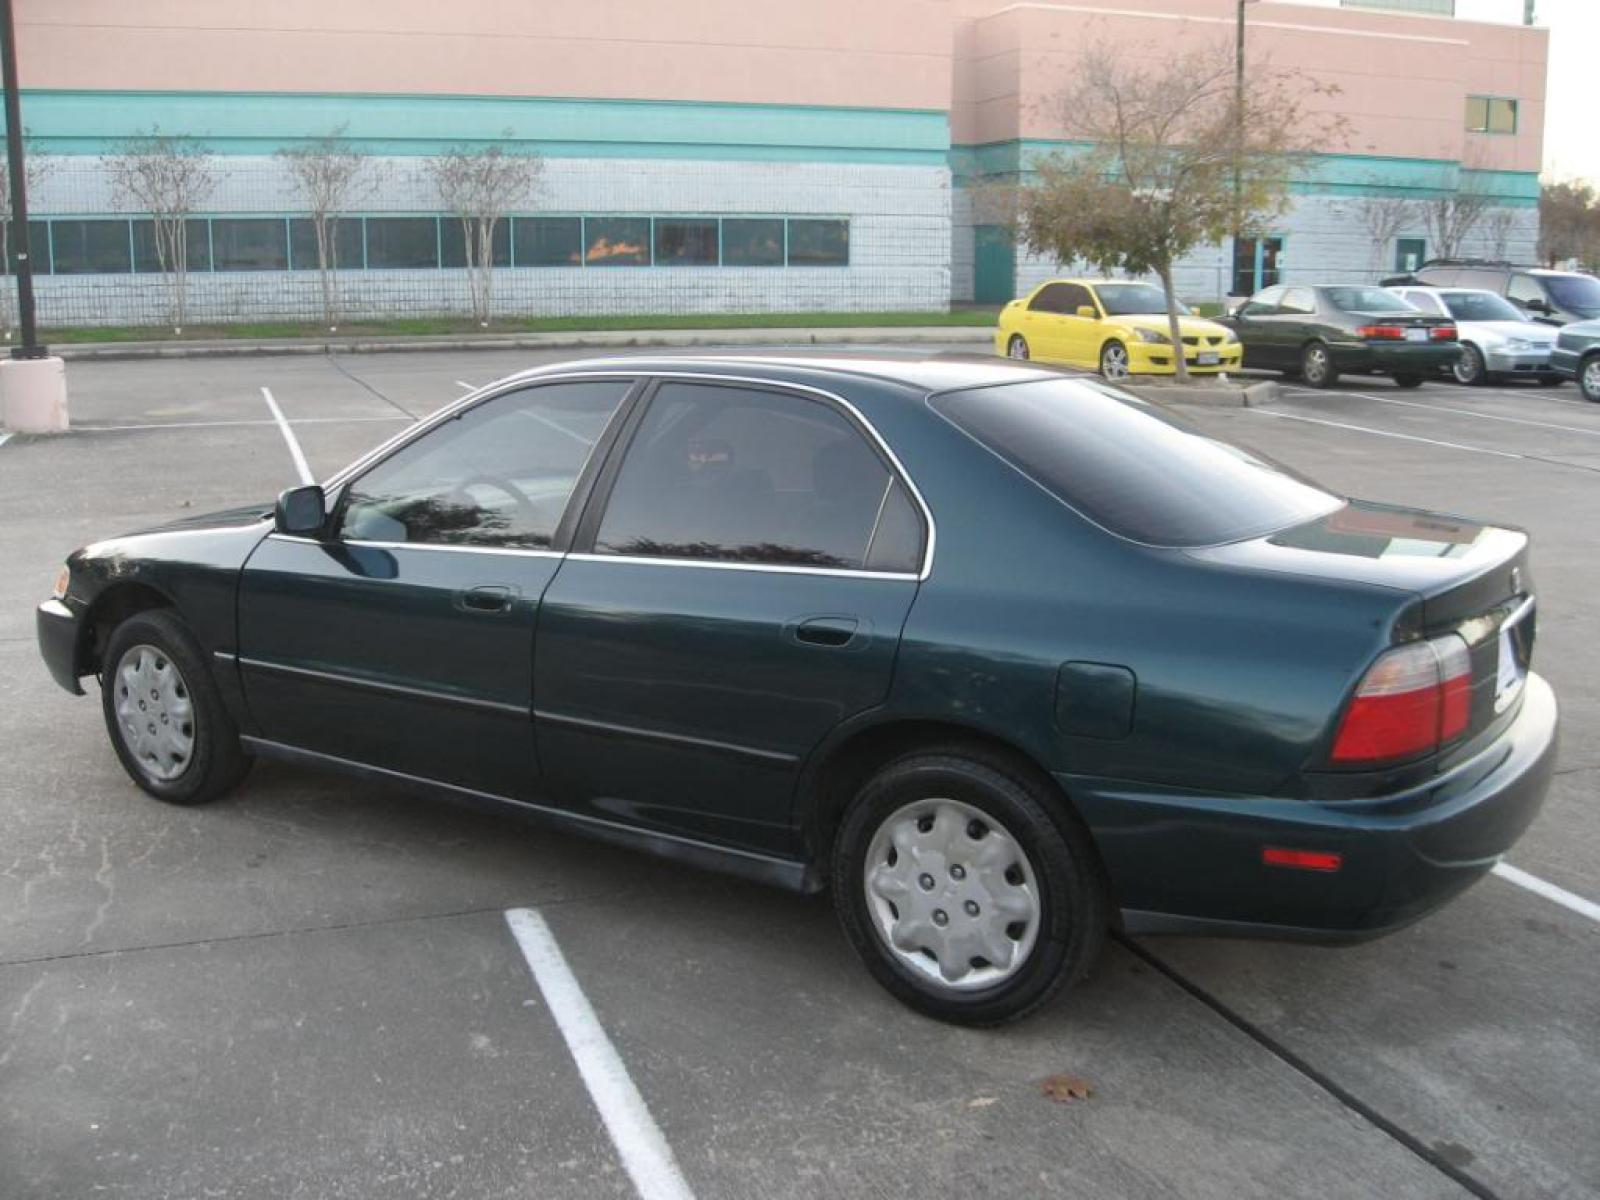 800 1024 1280 1600 origin 1997 Honda Accord ...